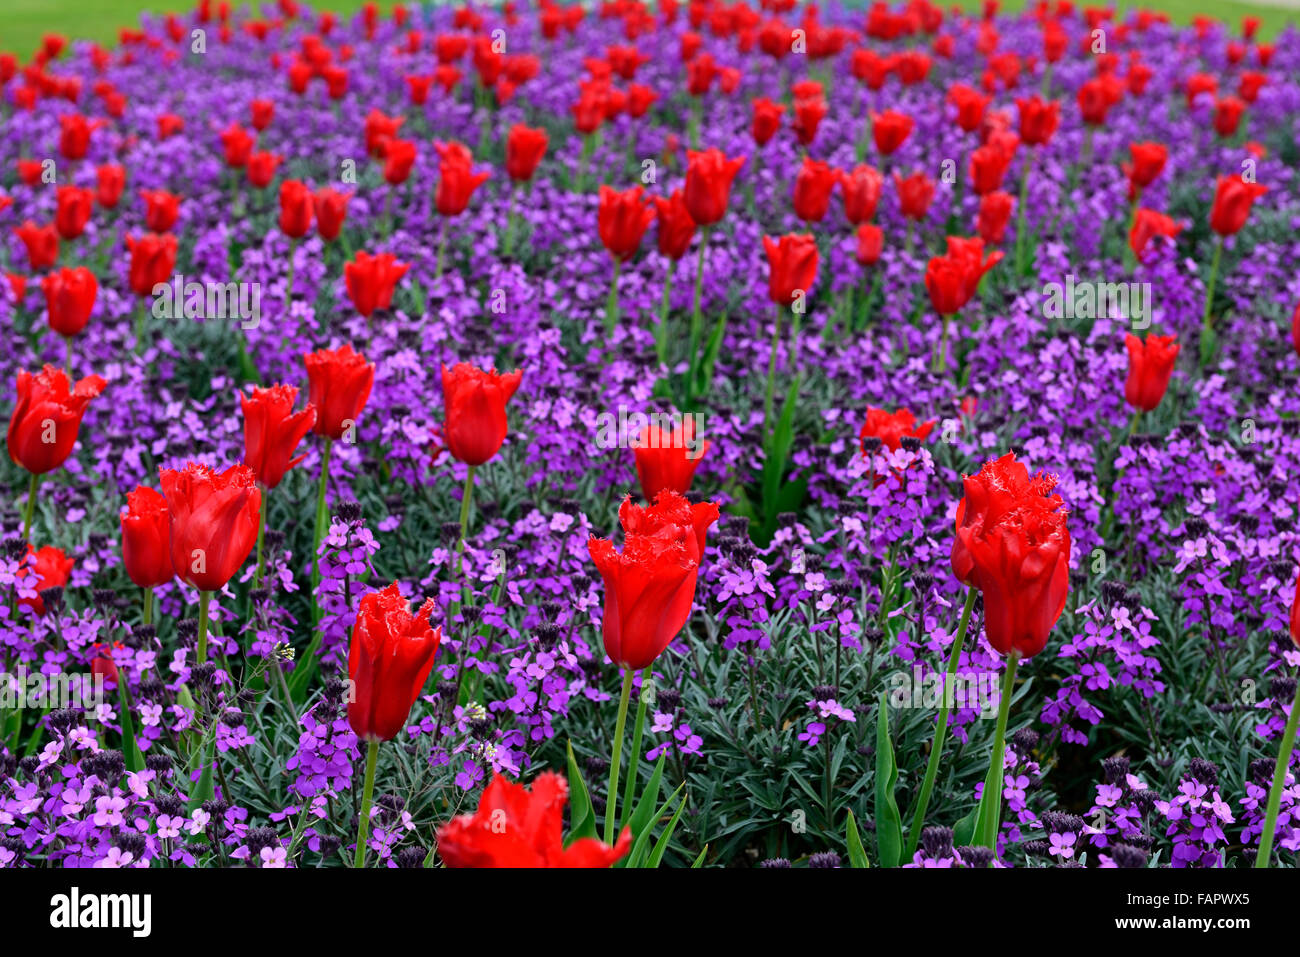 Red Purple Flower Combination Stock Photos & Red Purple Flower Combination Stock ...